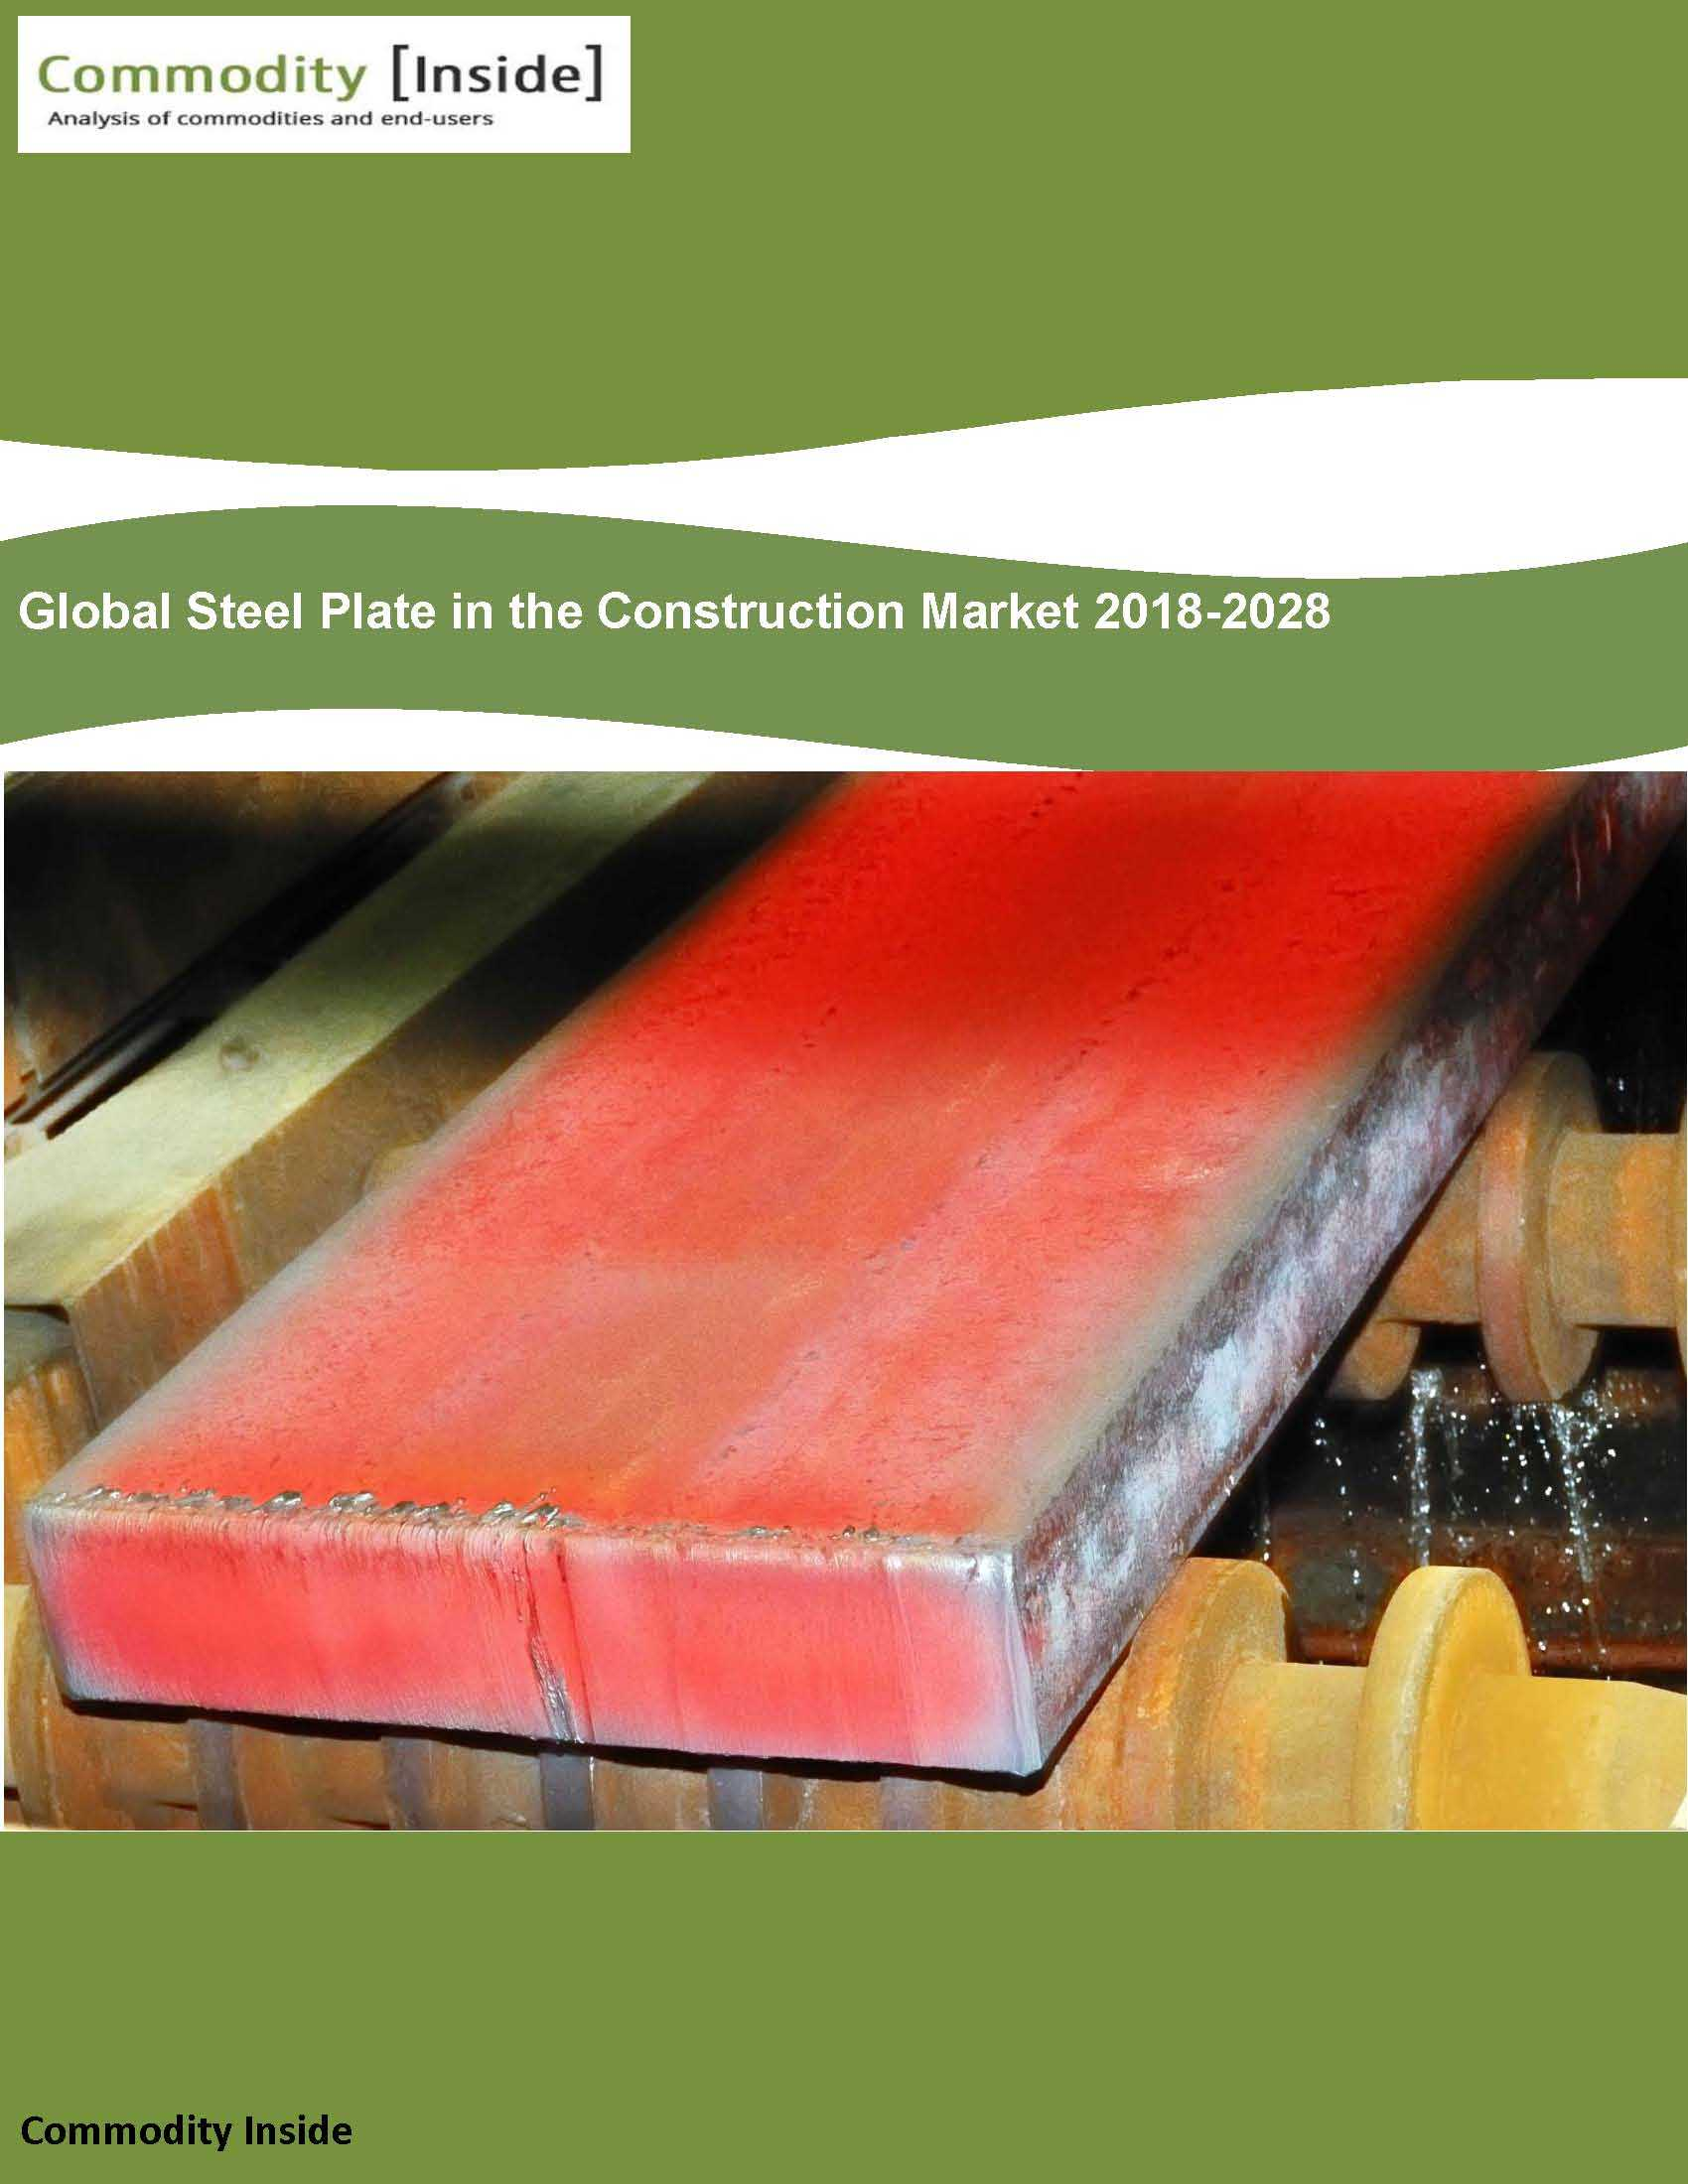 Construction Steel Market Global Steel Plate In The Construction Market Commodity